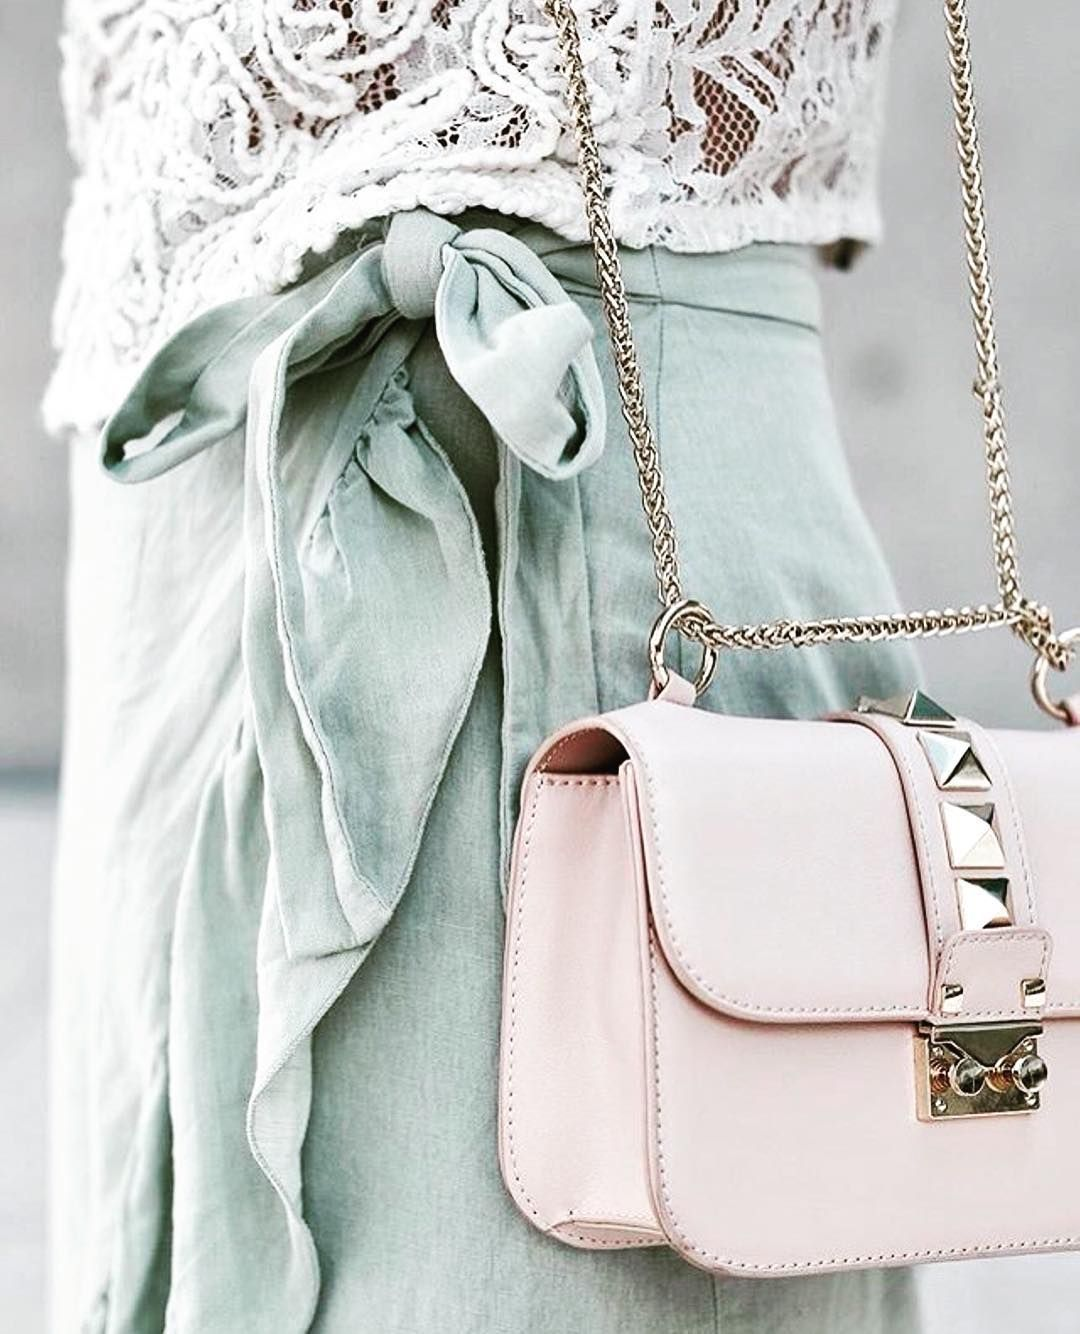 PRETTY IN PASTEL // Oh wow lovely details on @carina ...